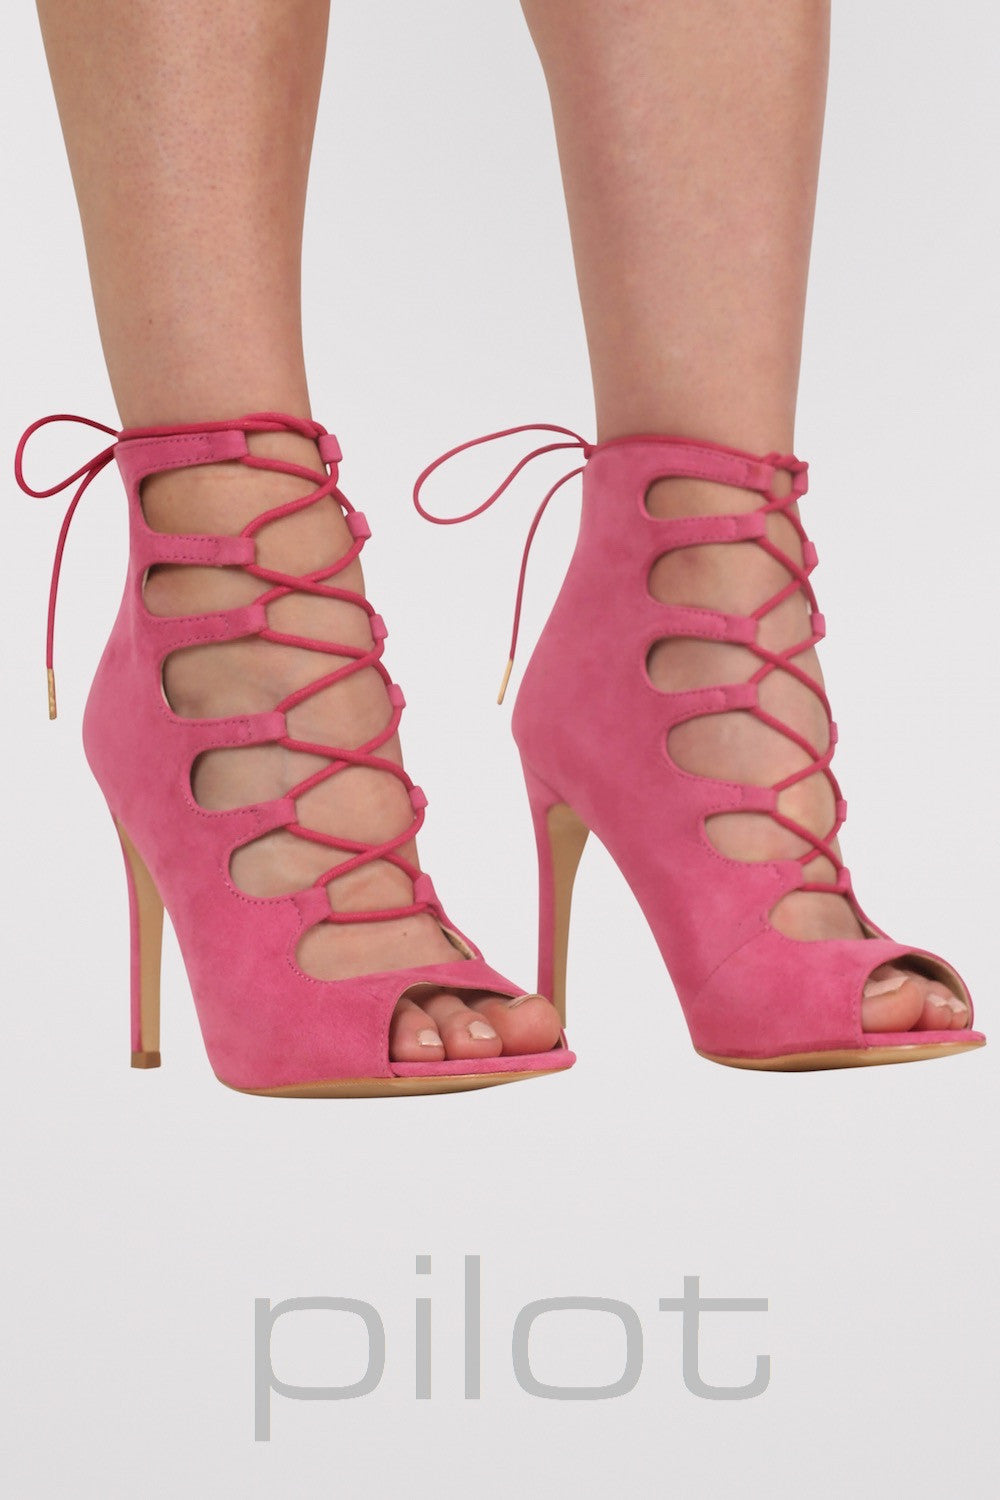 Lace Up High Heel Shoes in Magenta Pink 1